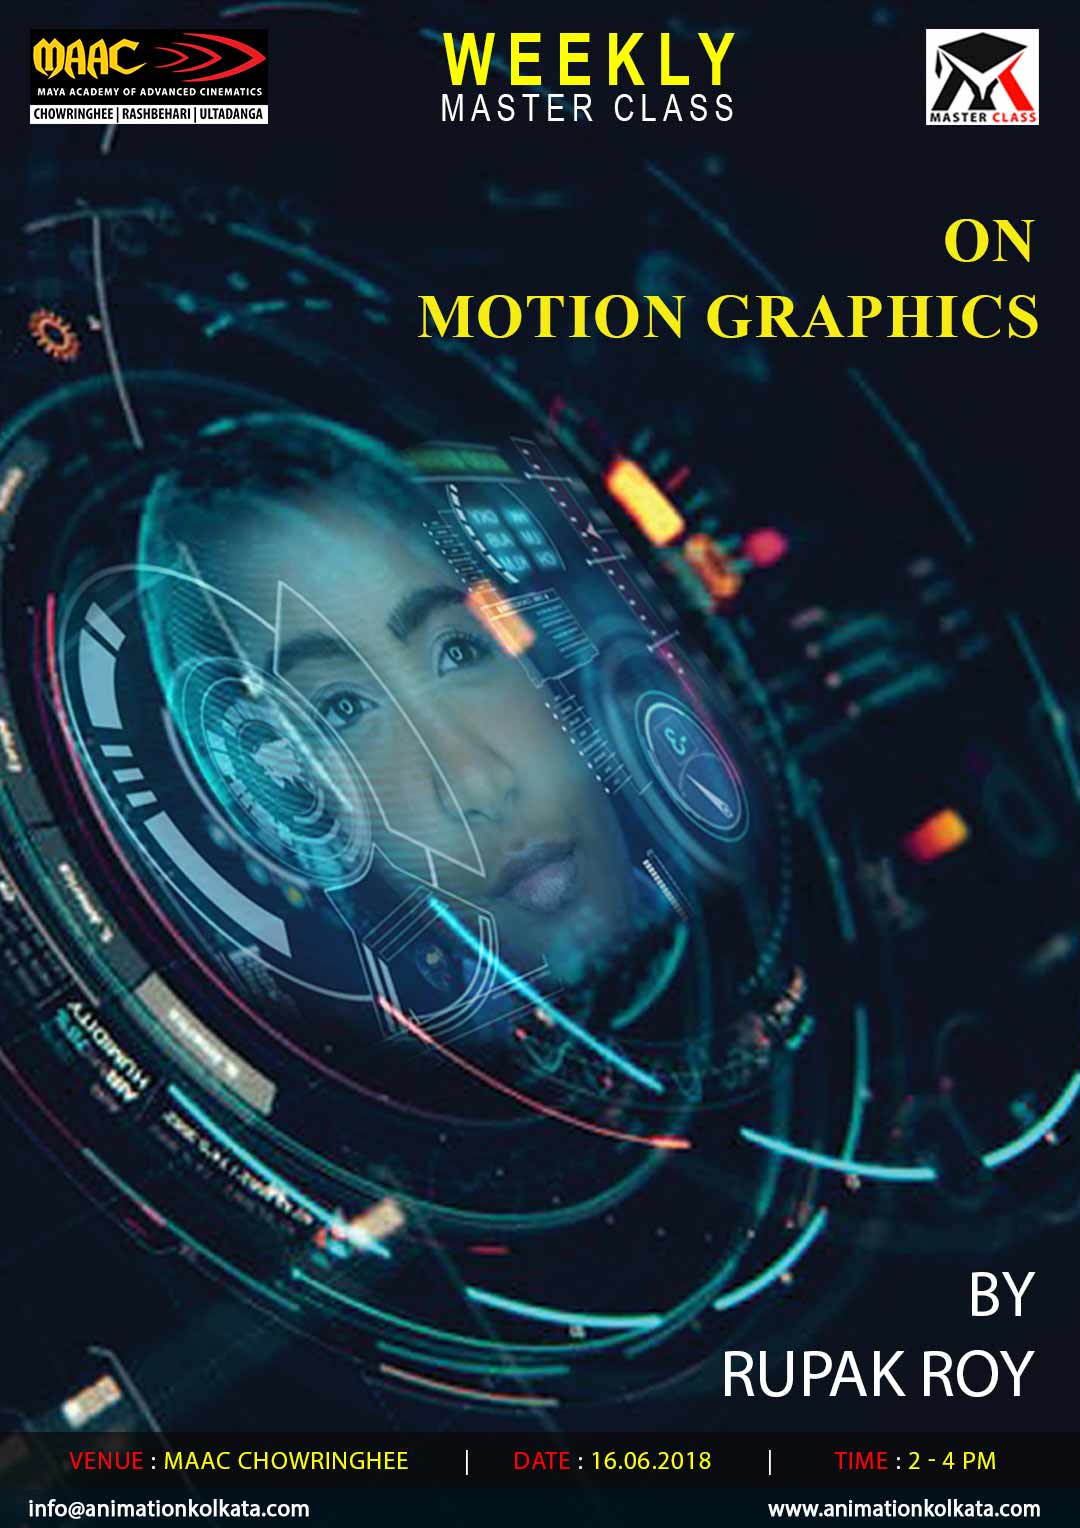 Weekly Master Class on Motion Graphics